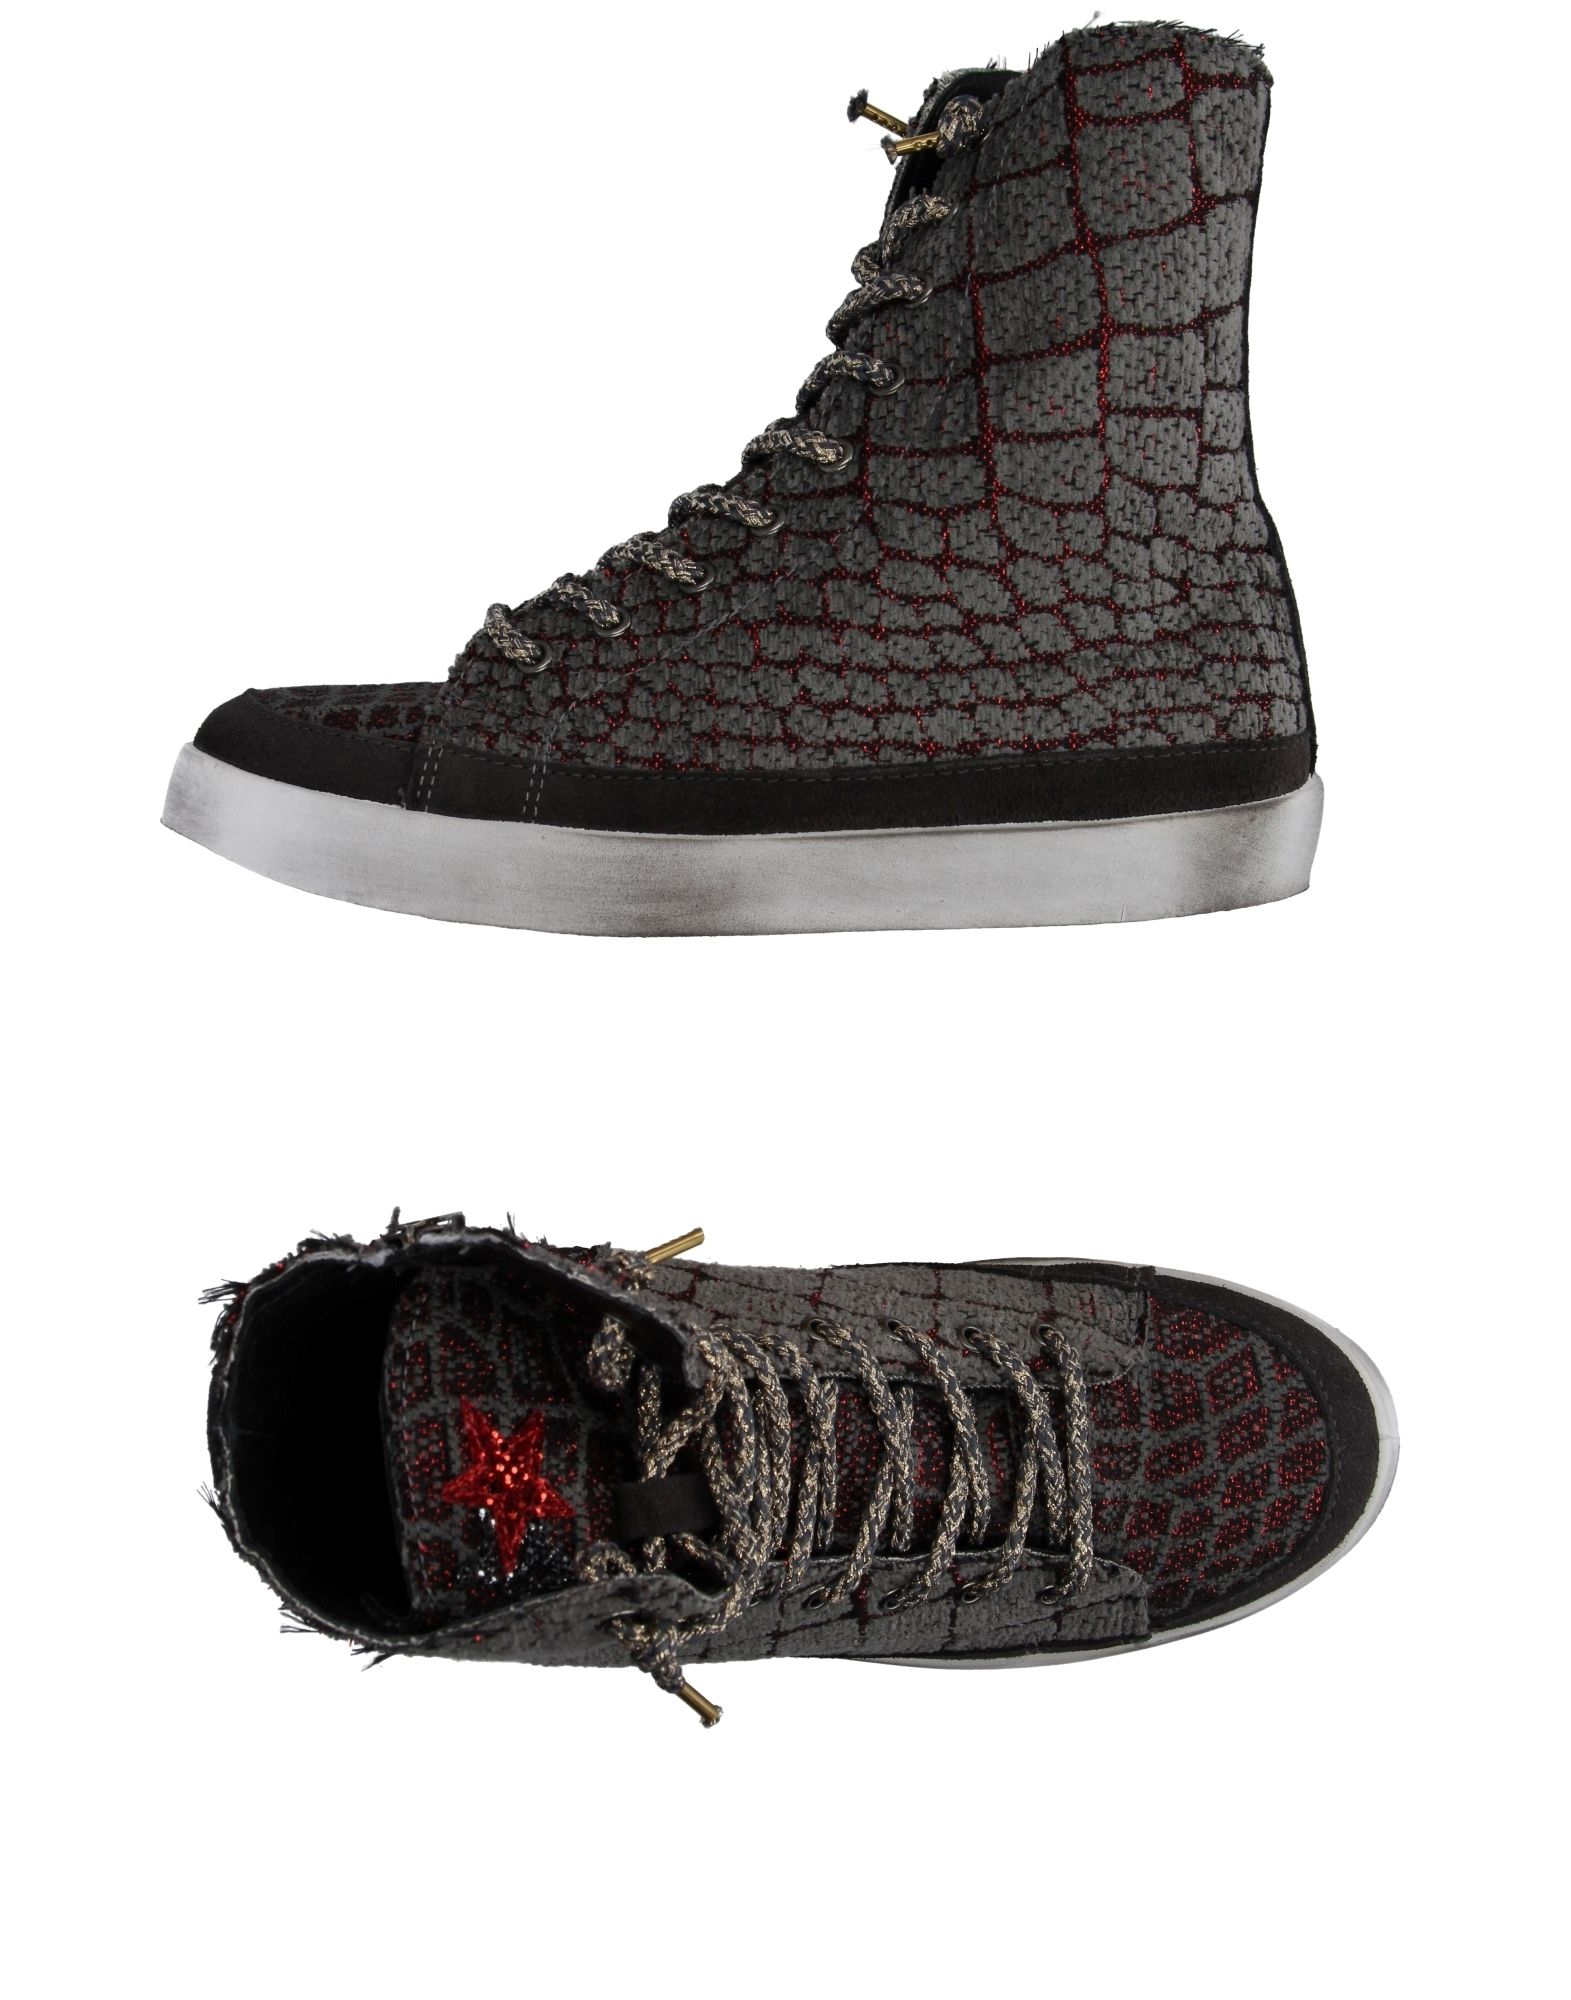 2STAR | 2STAR High-Tops & Sneakers 11716991 | Goxip